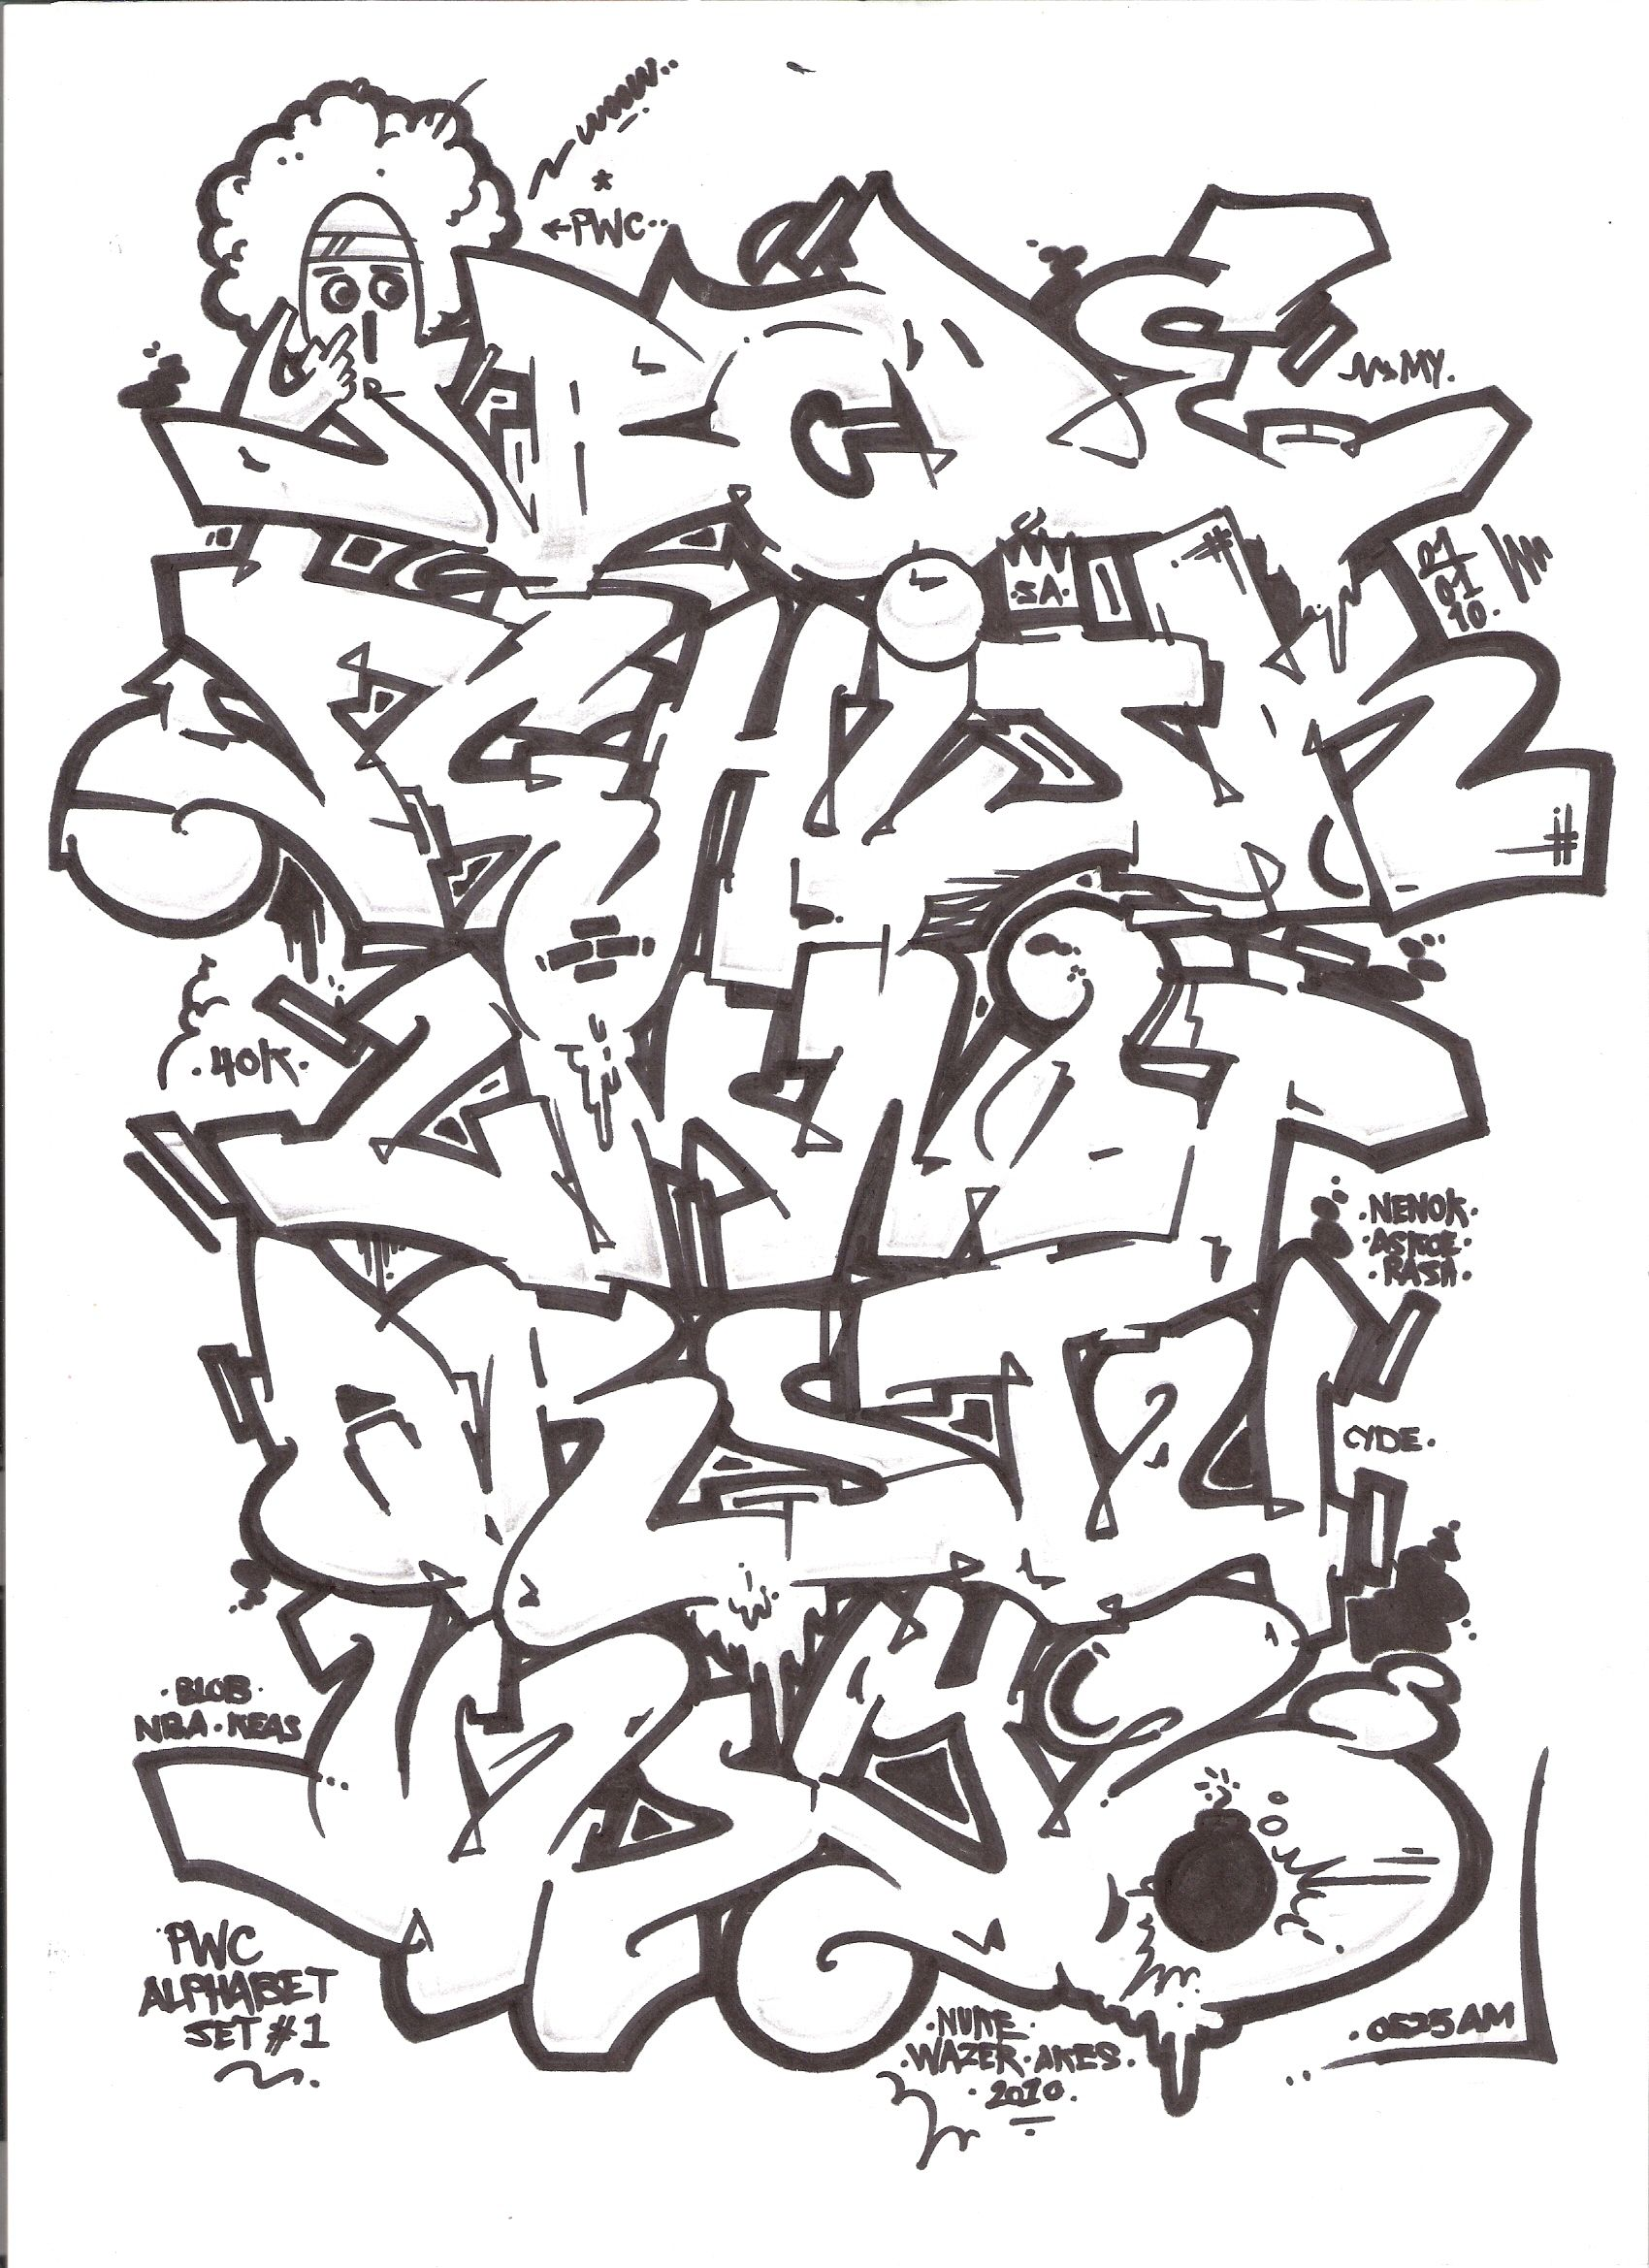 Alphabet Graffiti Block Style Hd Photos Gallery